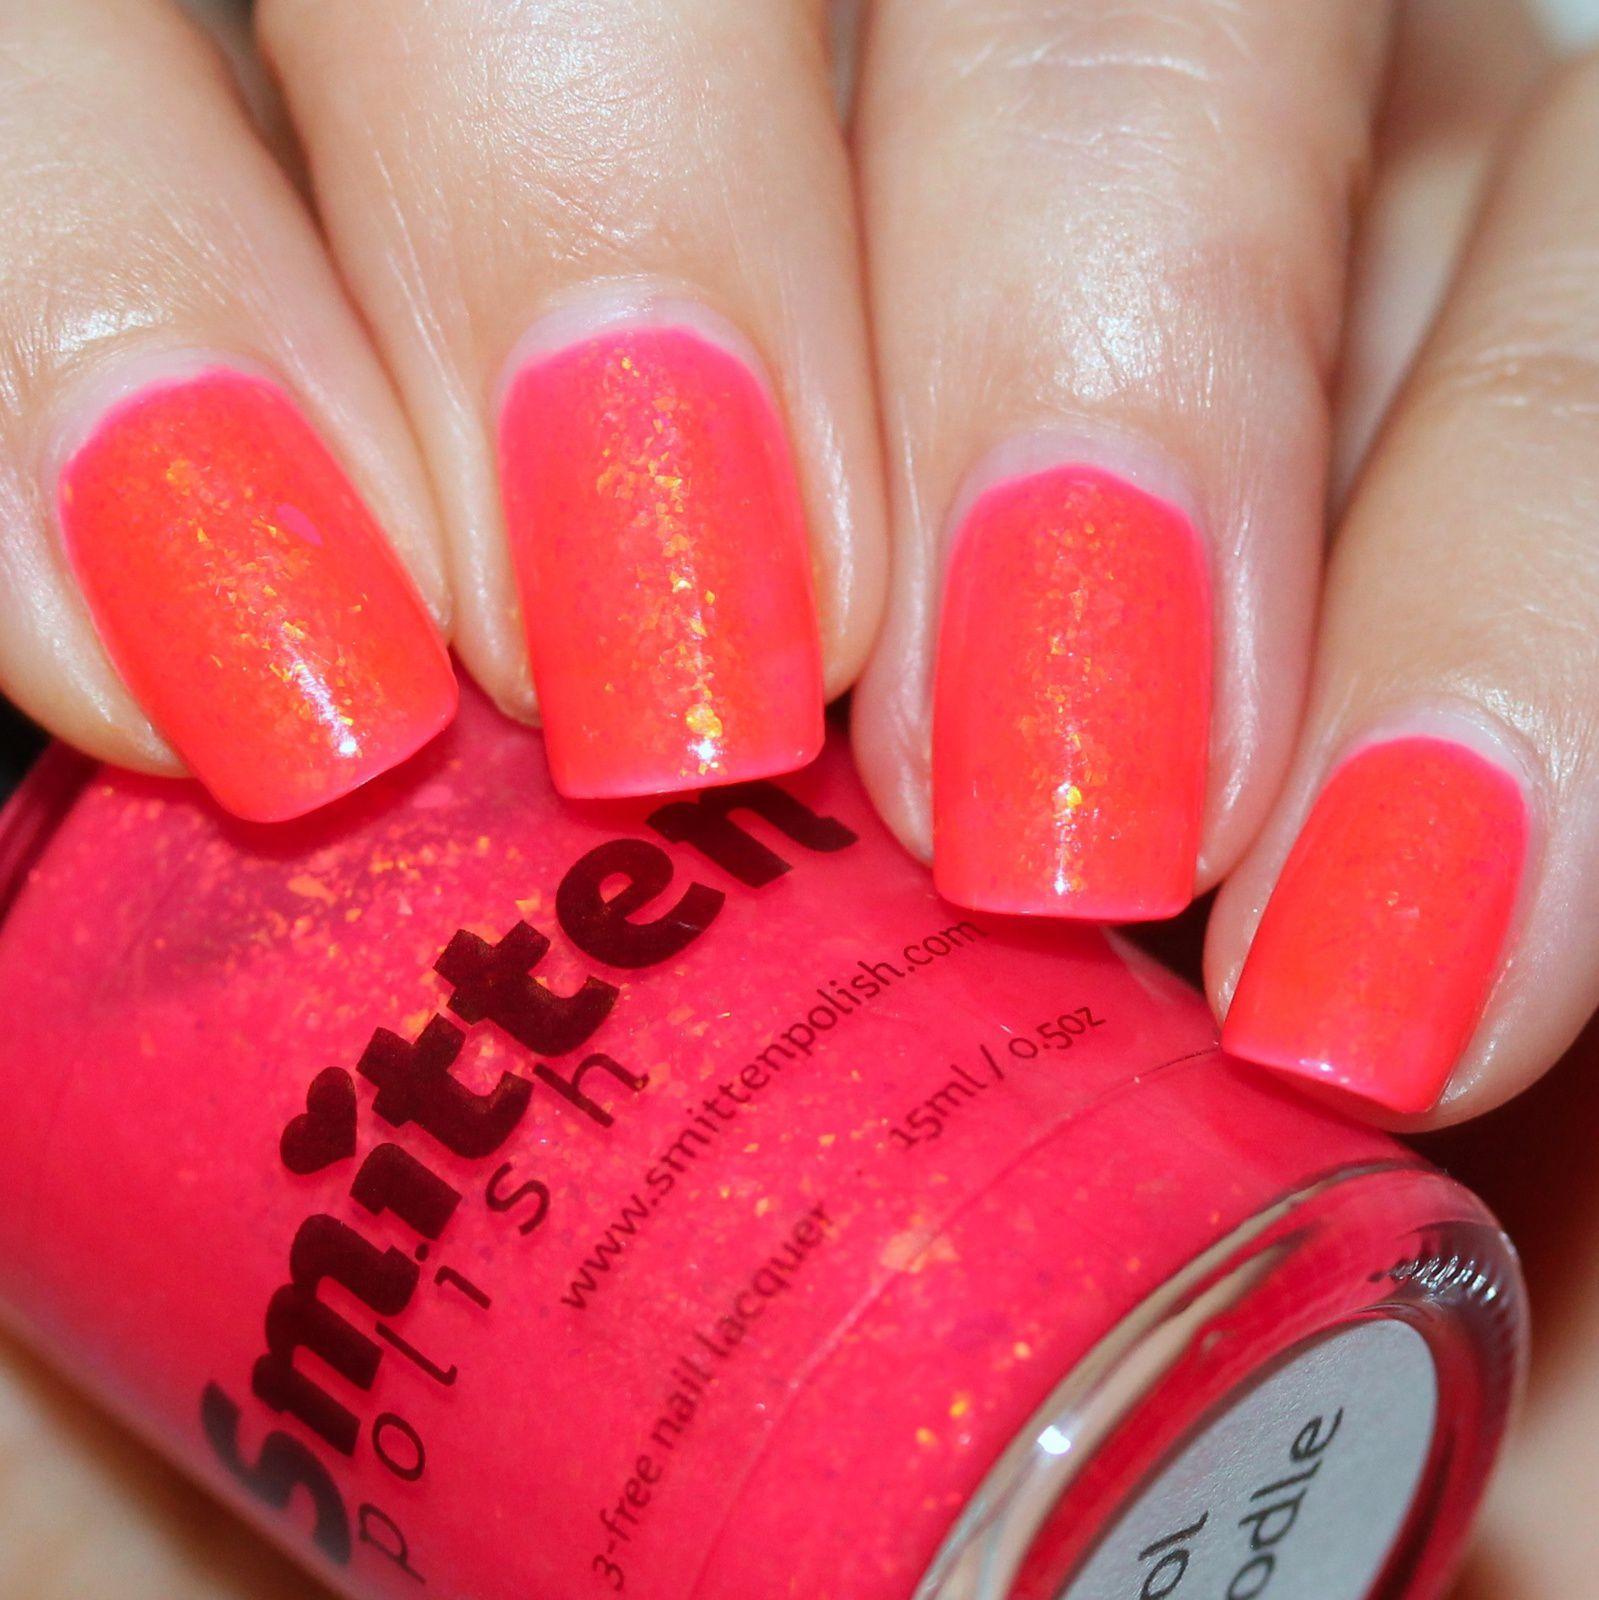 Sally Hansen Complete Care 4-in-1 Extra Moisturizing Nail Treatment / Smitten Polish (Dreamland Lacquer) Pool Noodle / HK Girl Top Coat